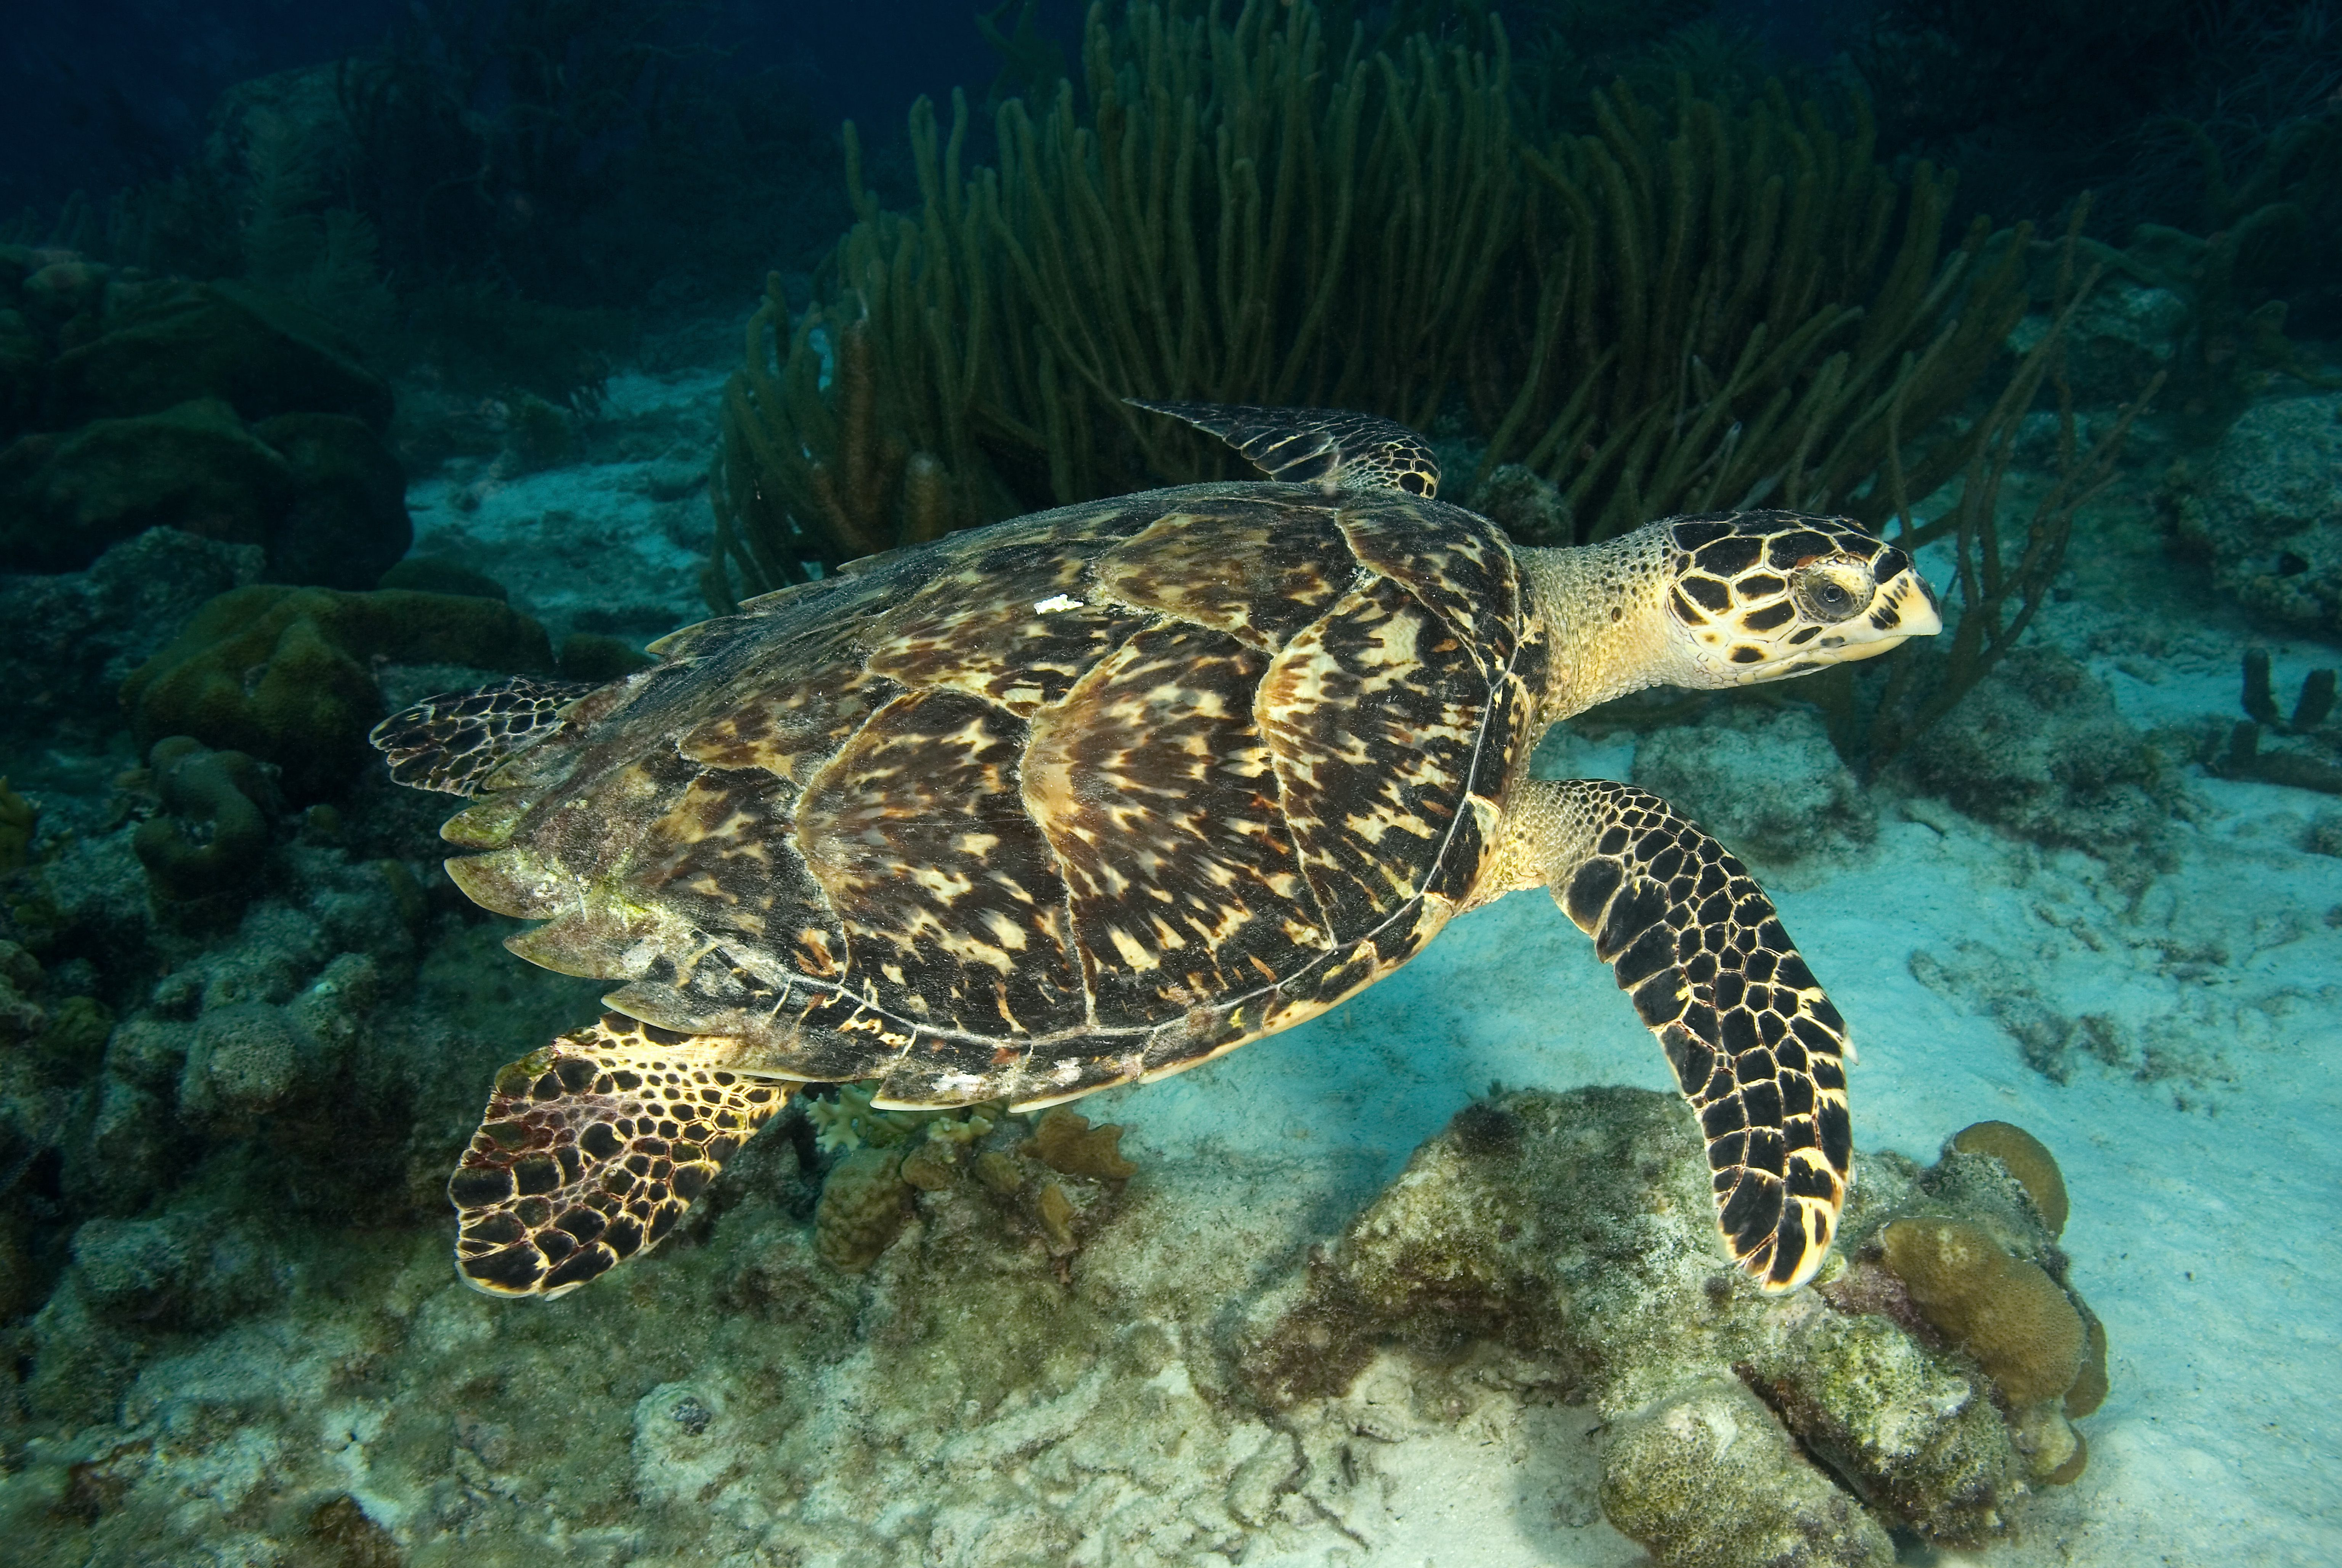 large beautiful sea turtle with a carapase of overlapping sections of variagated brown markings, serated on the back of the turtle, and large flippers for swimming, swimming in a coral reef